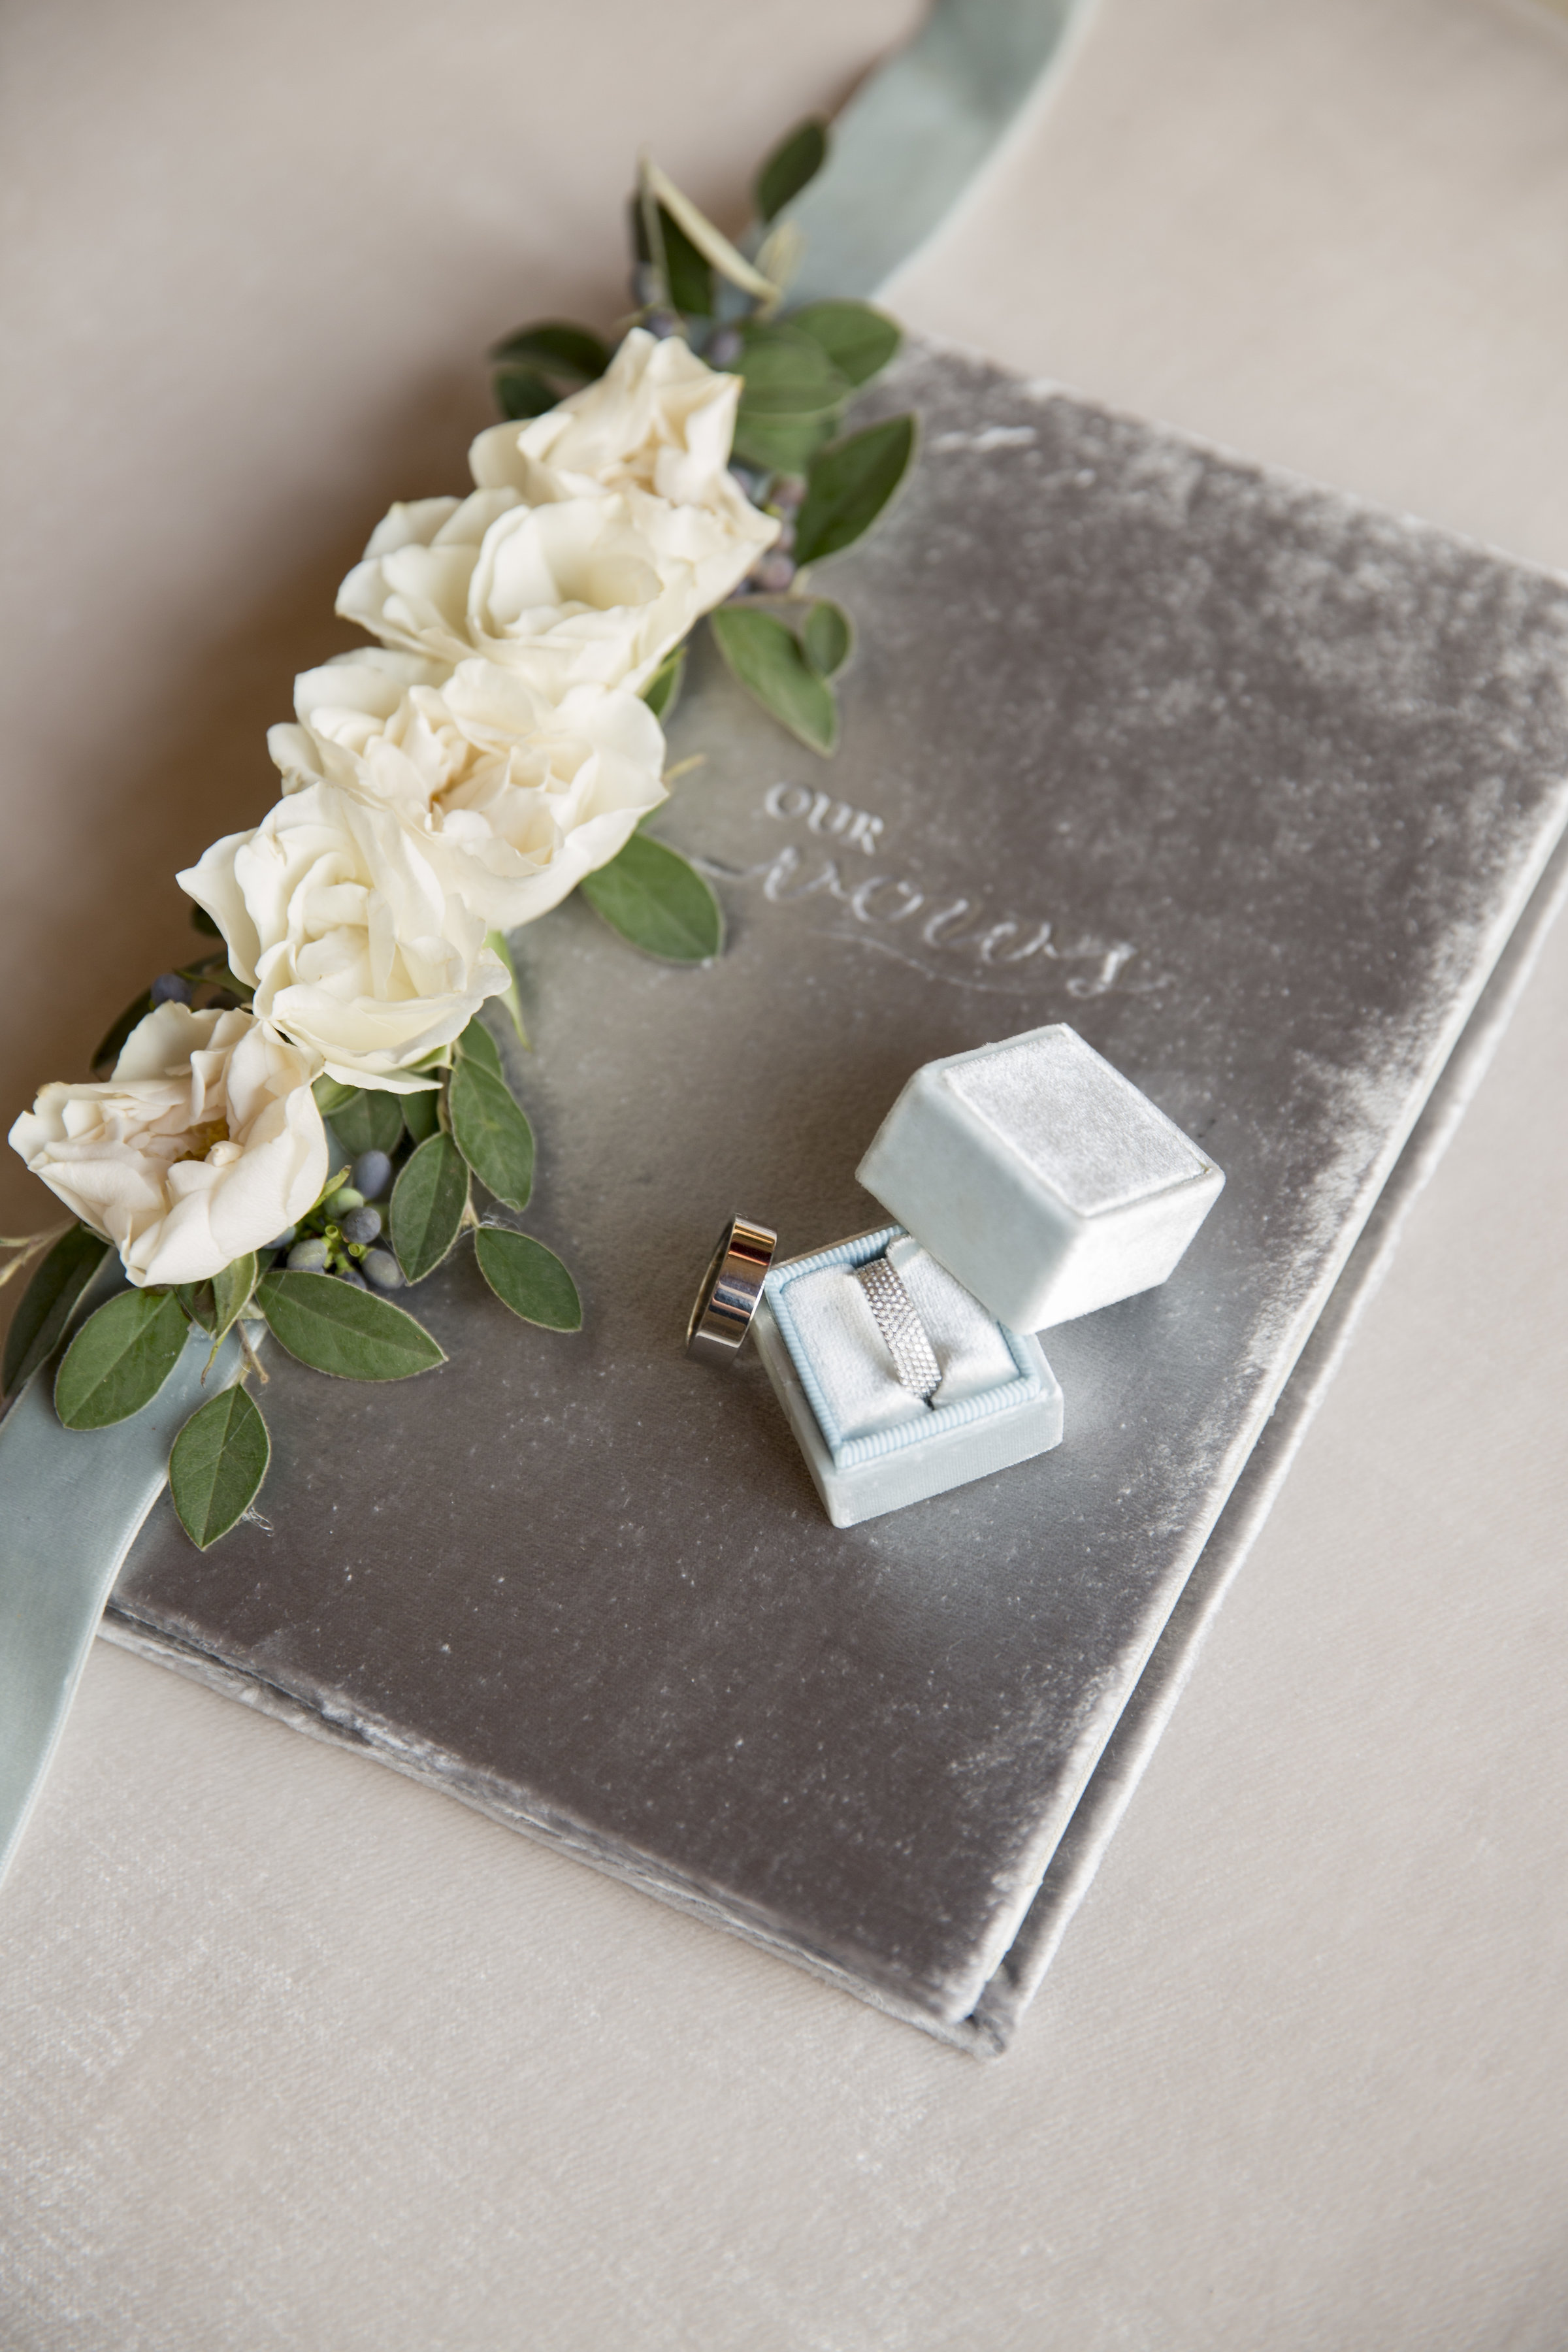 vow book and wedding rings